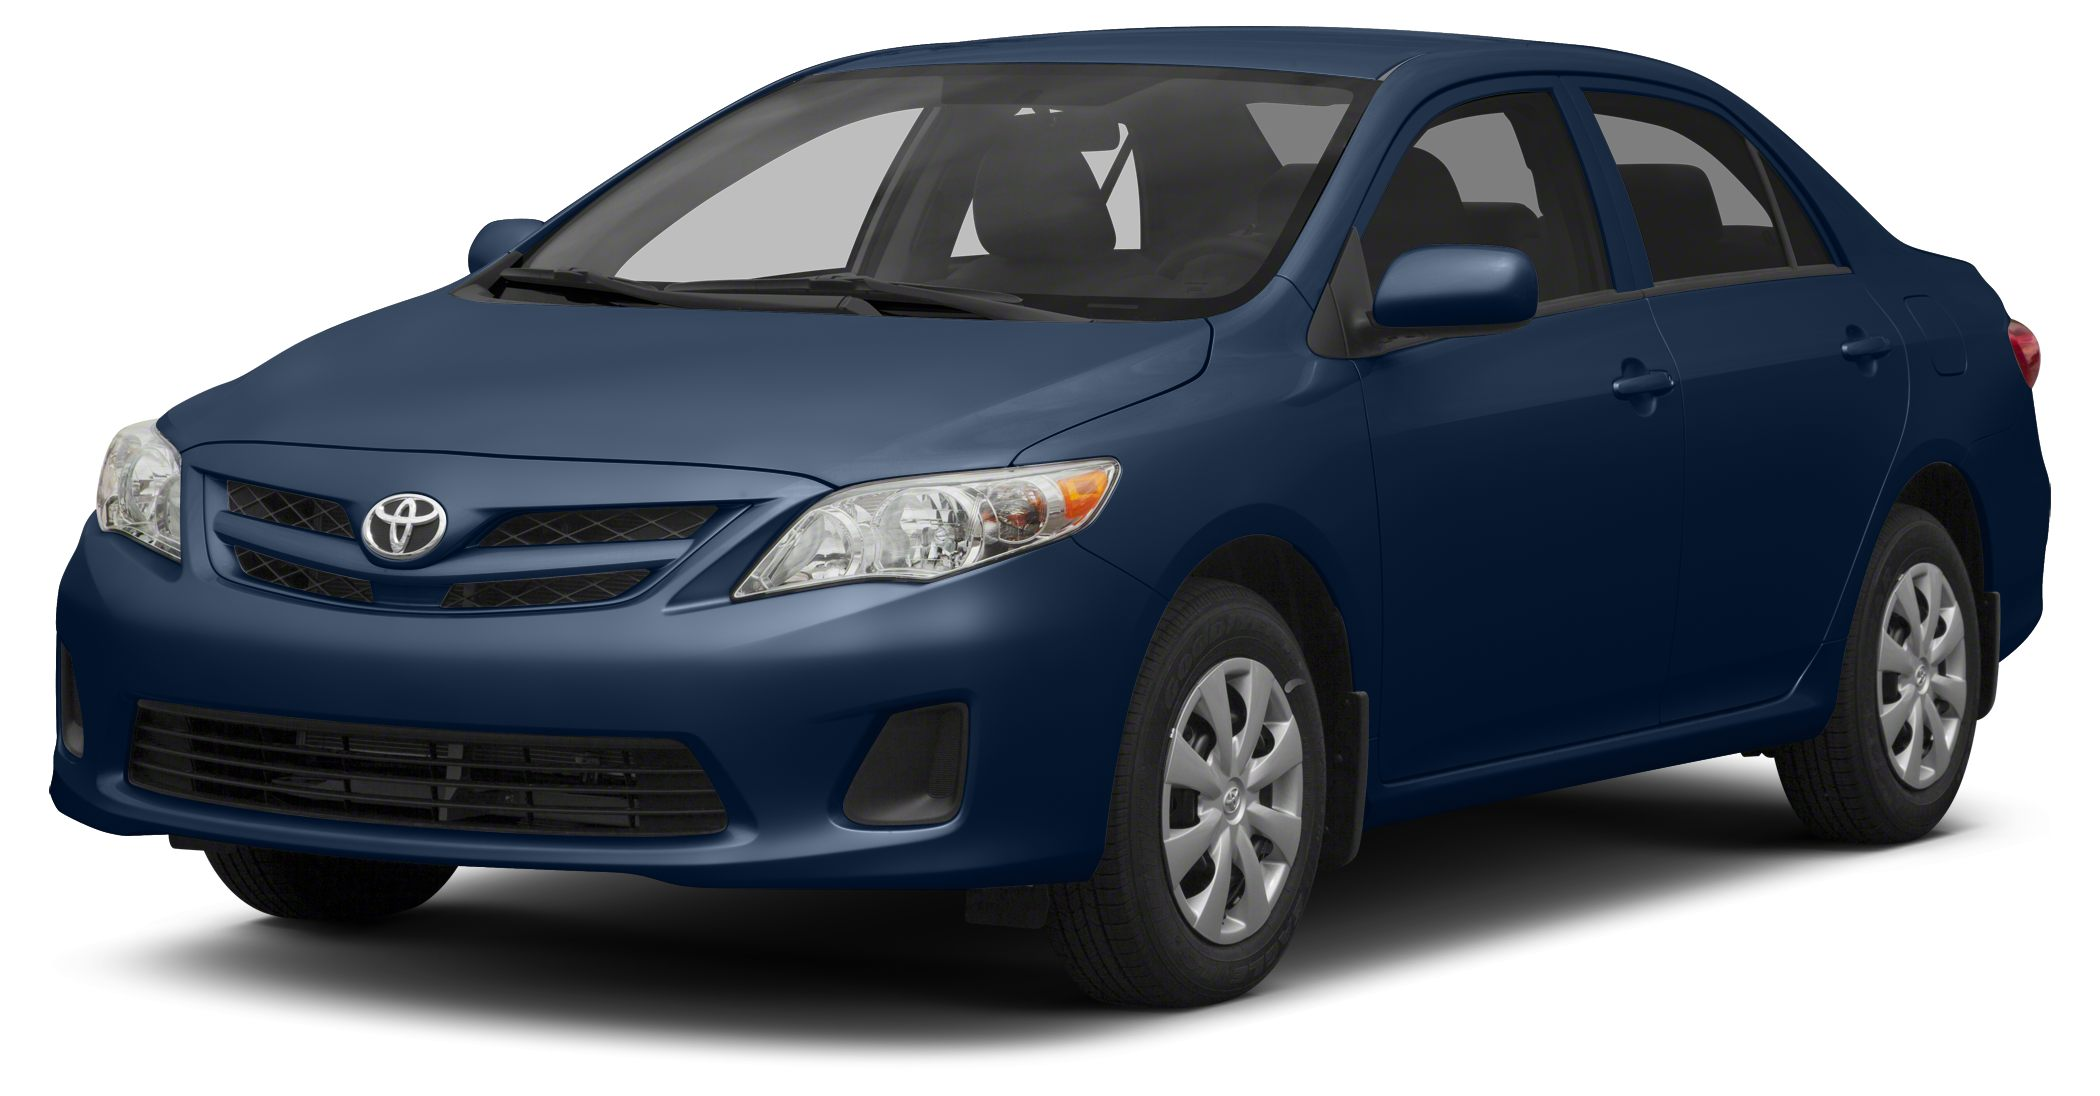 2012 Toyota Corolla L L trim CARFAX 1-Owner LOW MILES - 9005 EPA 34 MPG Hwy26 MPG City CD Pl